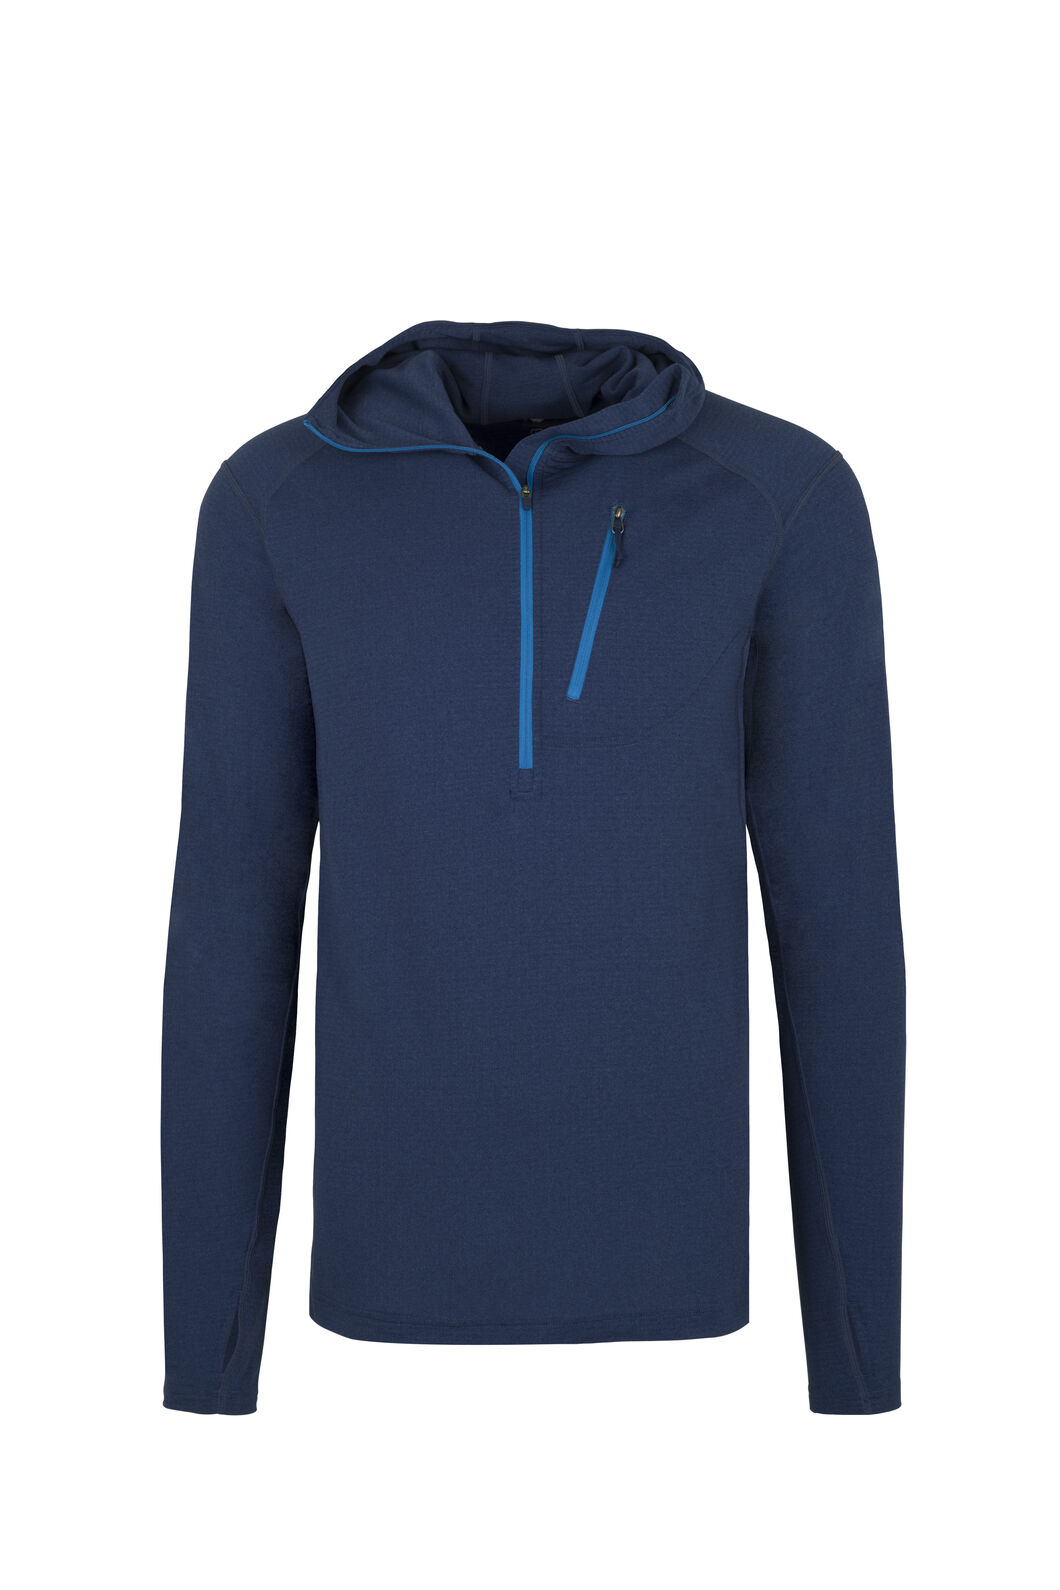 Macpac ProThermal Hooded Top - Men's, Medieval Blue, hi-res